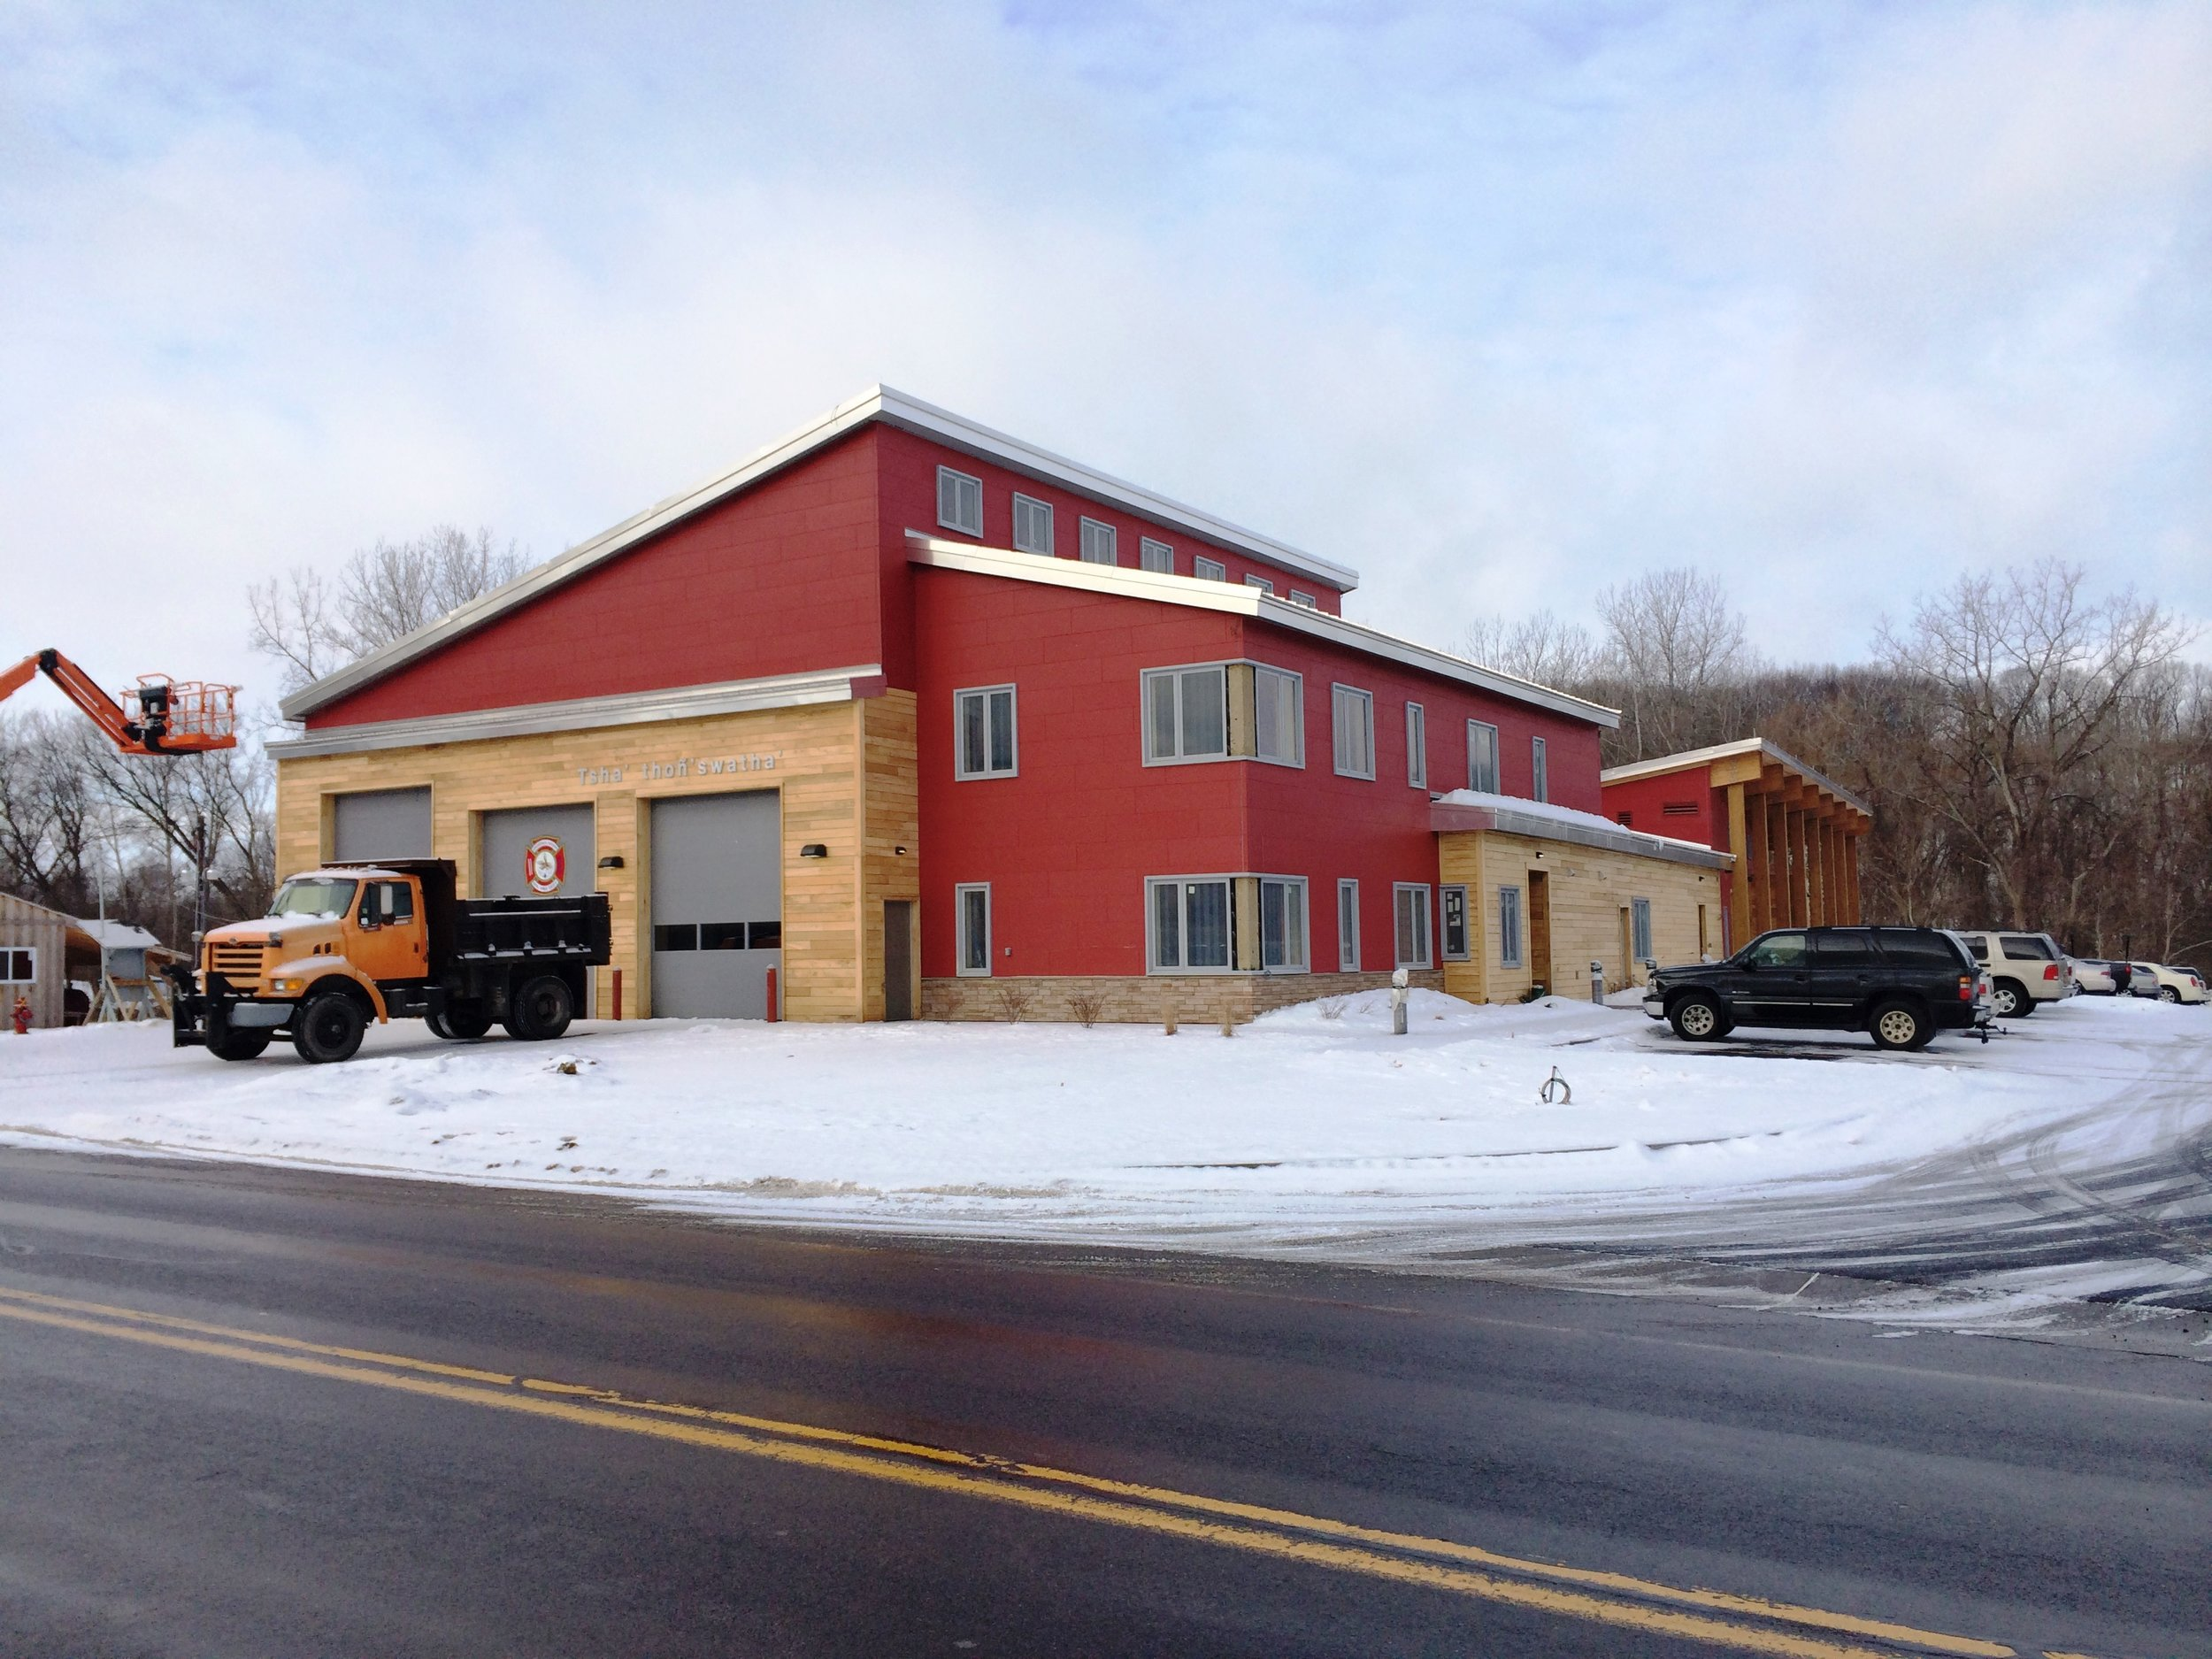 Onondaga Nation Fire Station